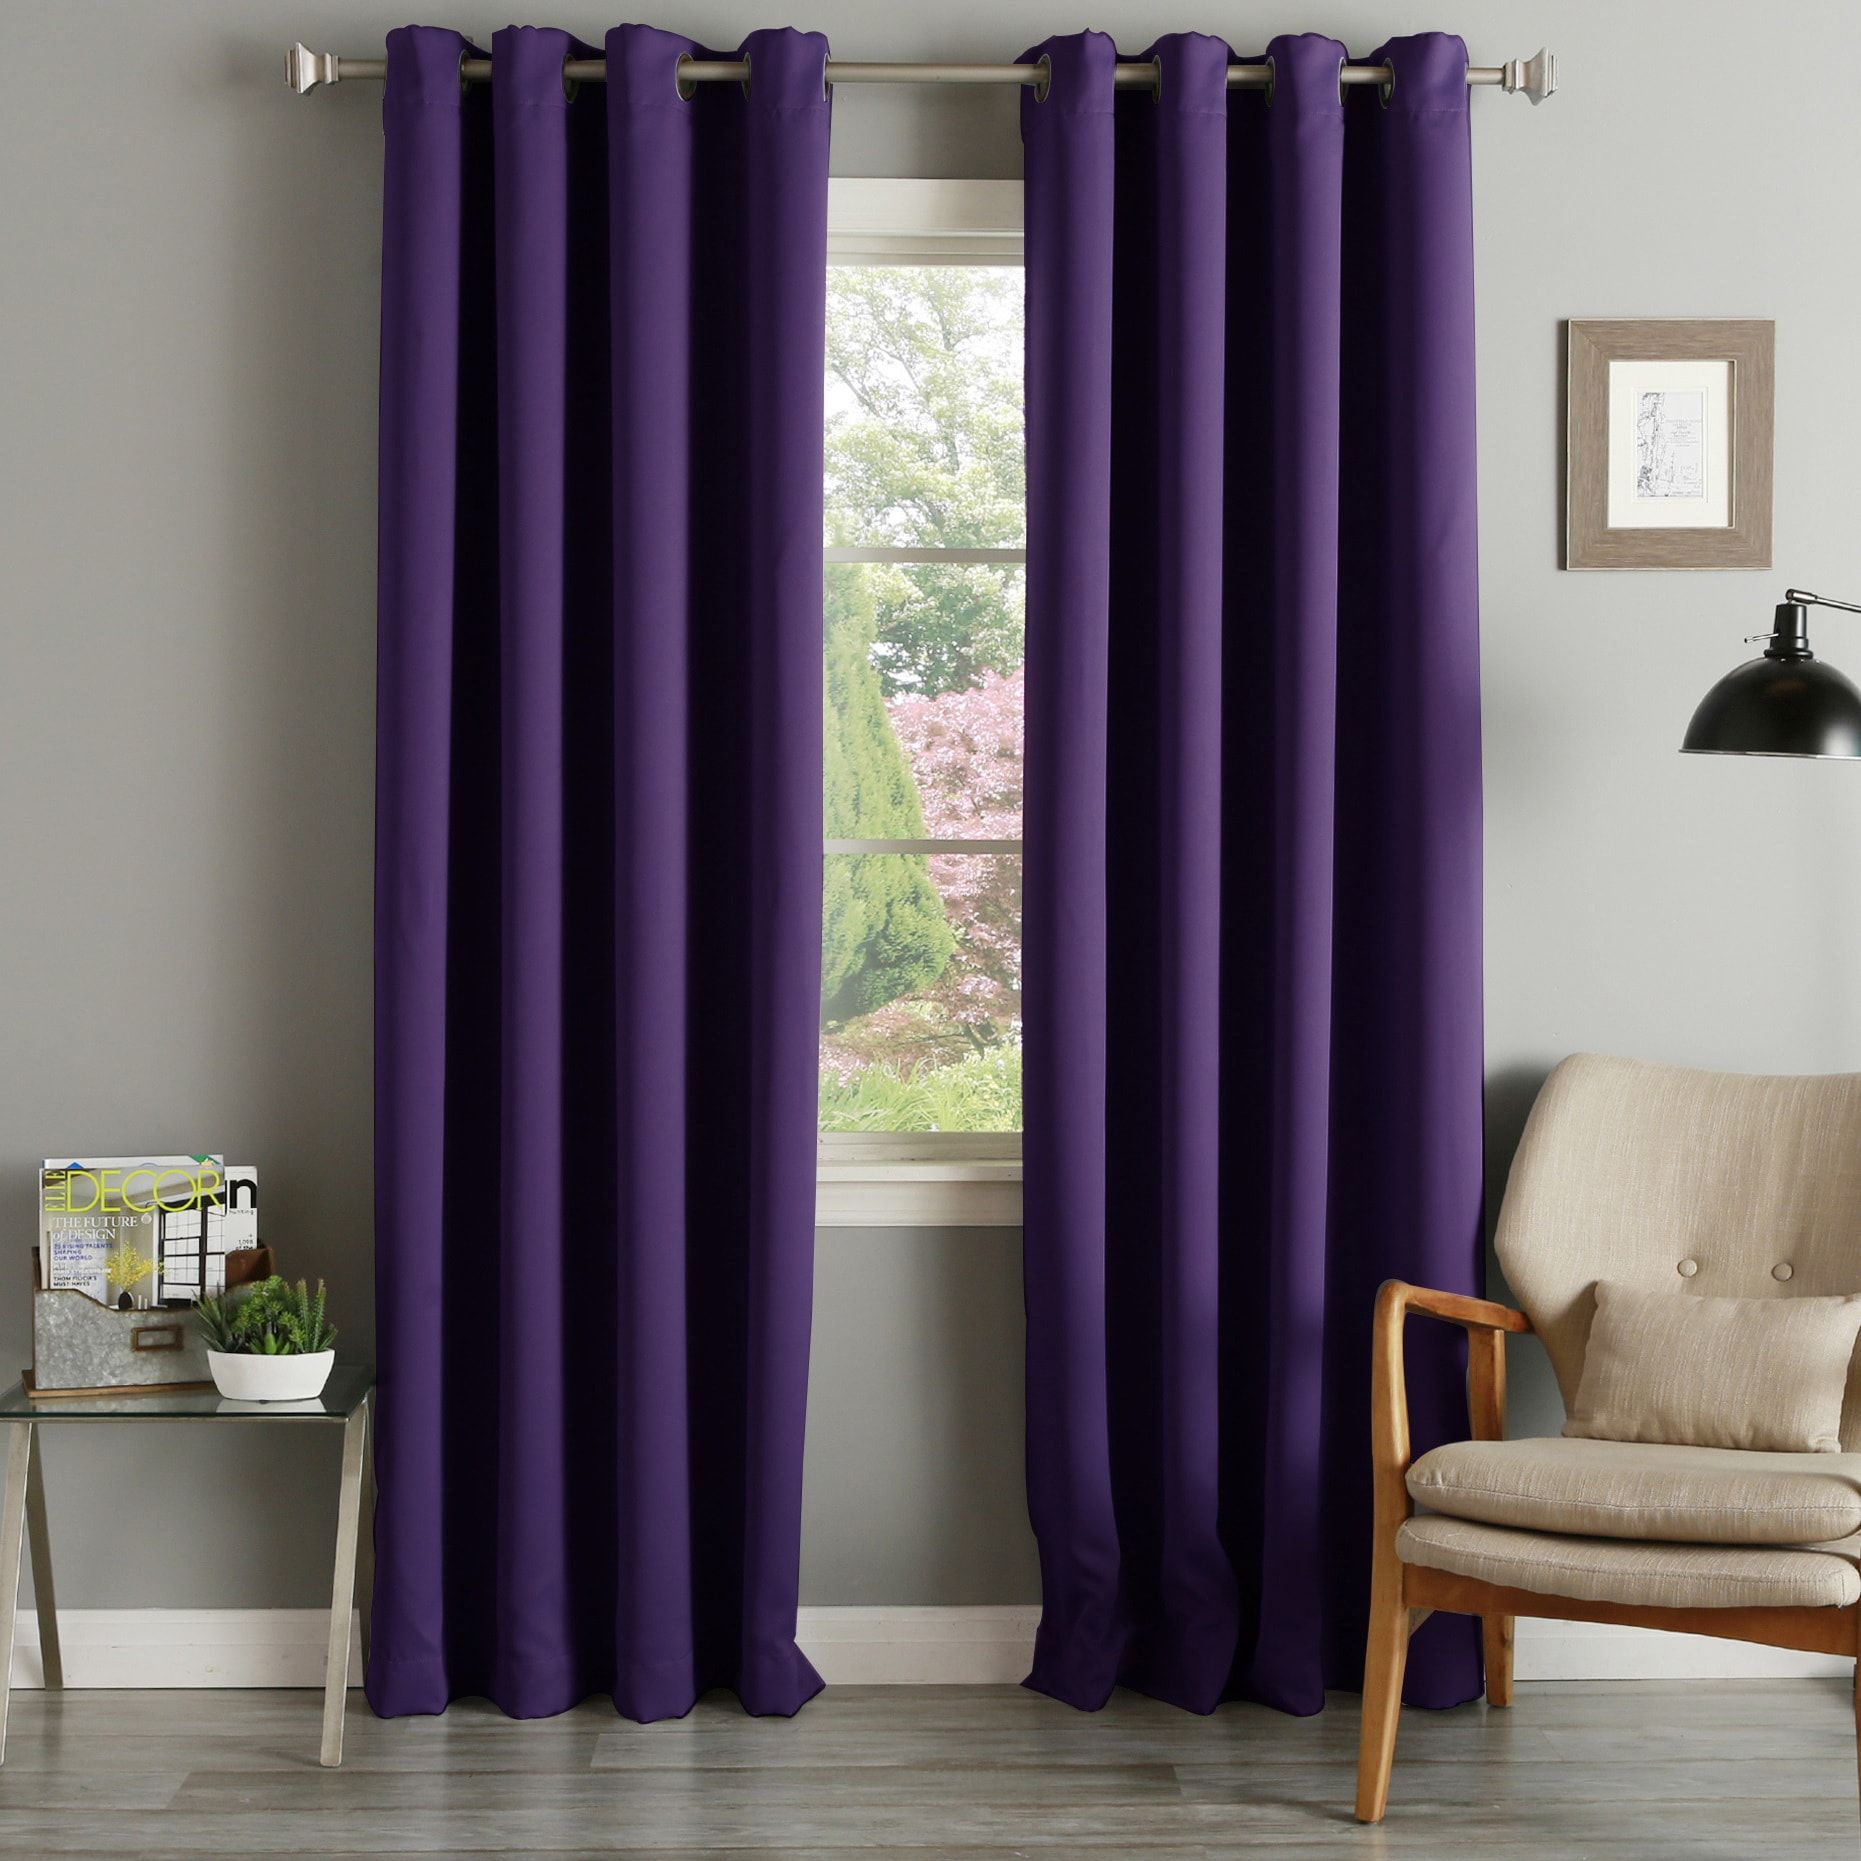 Aurora Home Grommet Top Thermal Insulated 96 Inch Blackout Within Thermal Insulated Blackout Curtain Pairs (View 17 of 30)